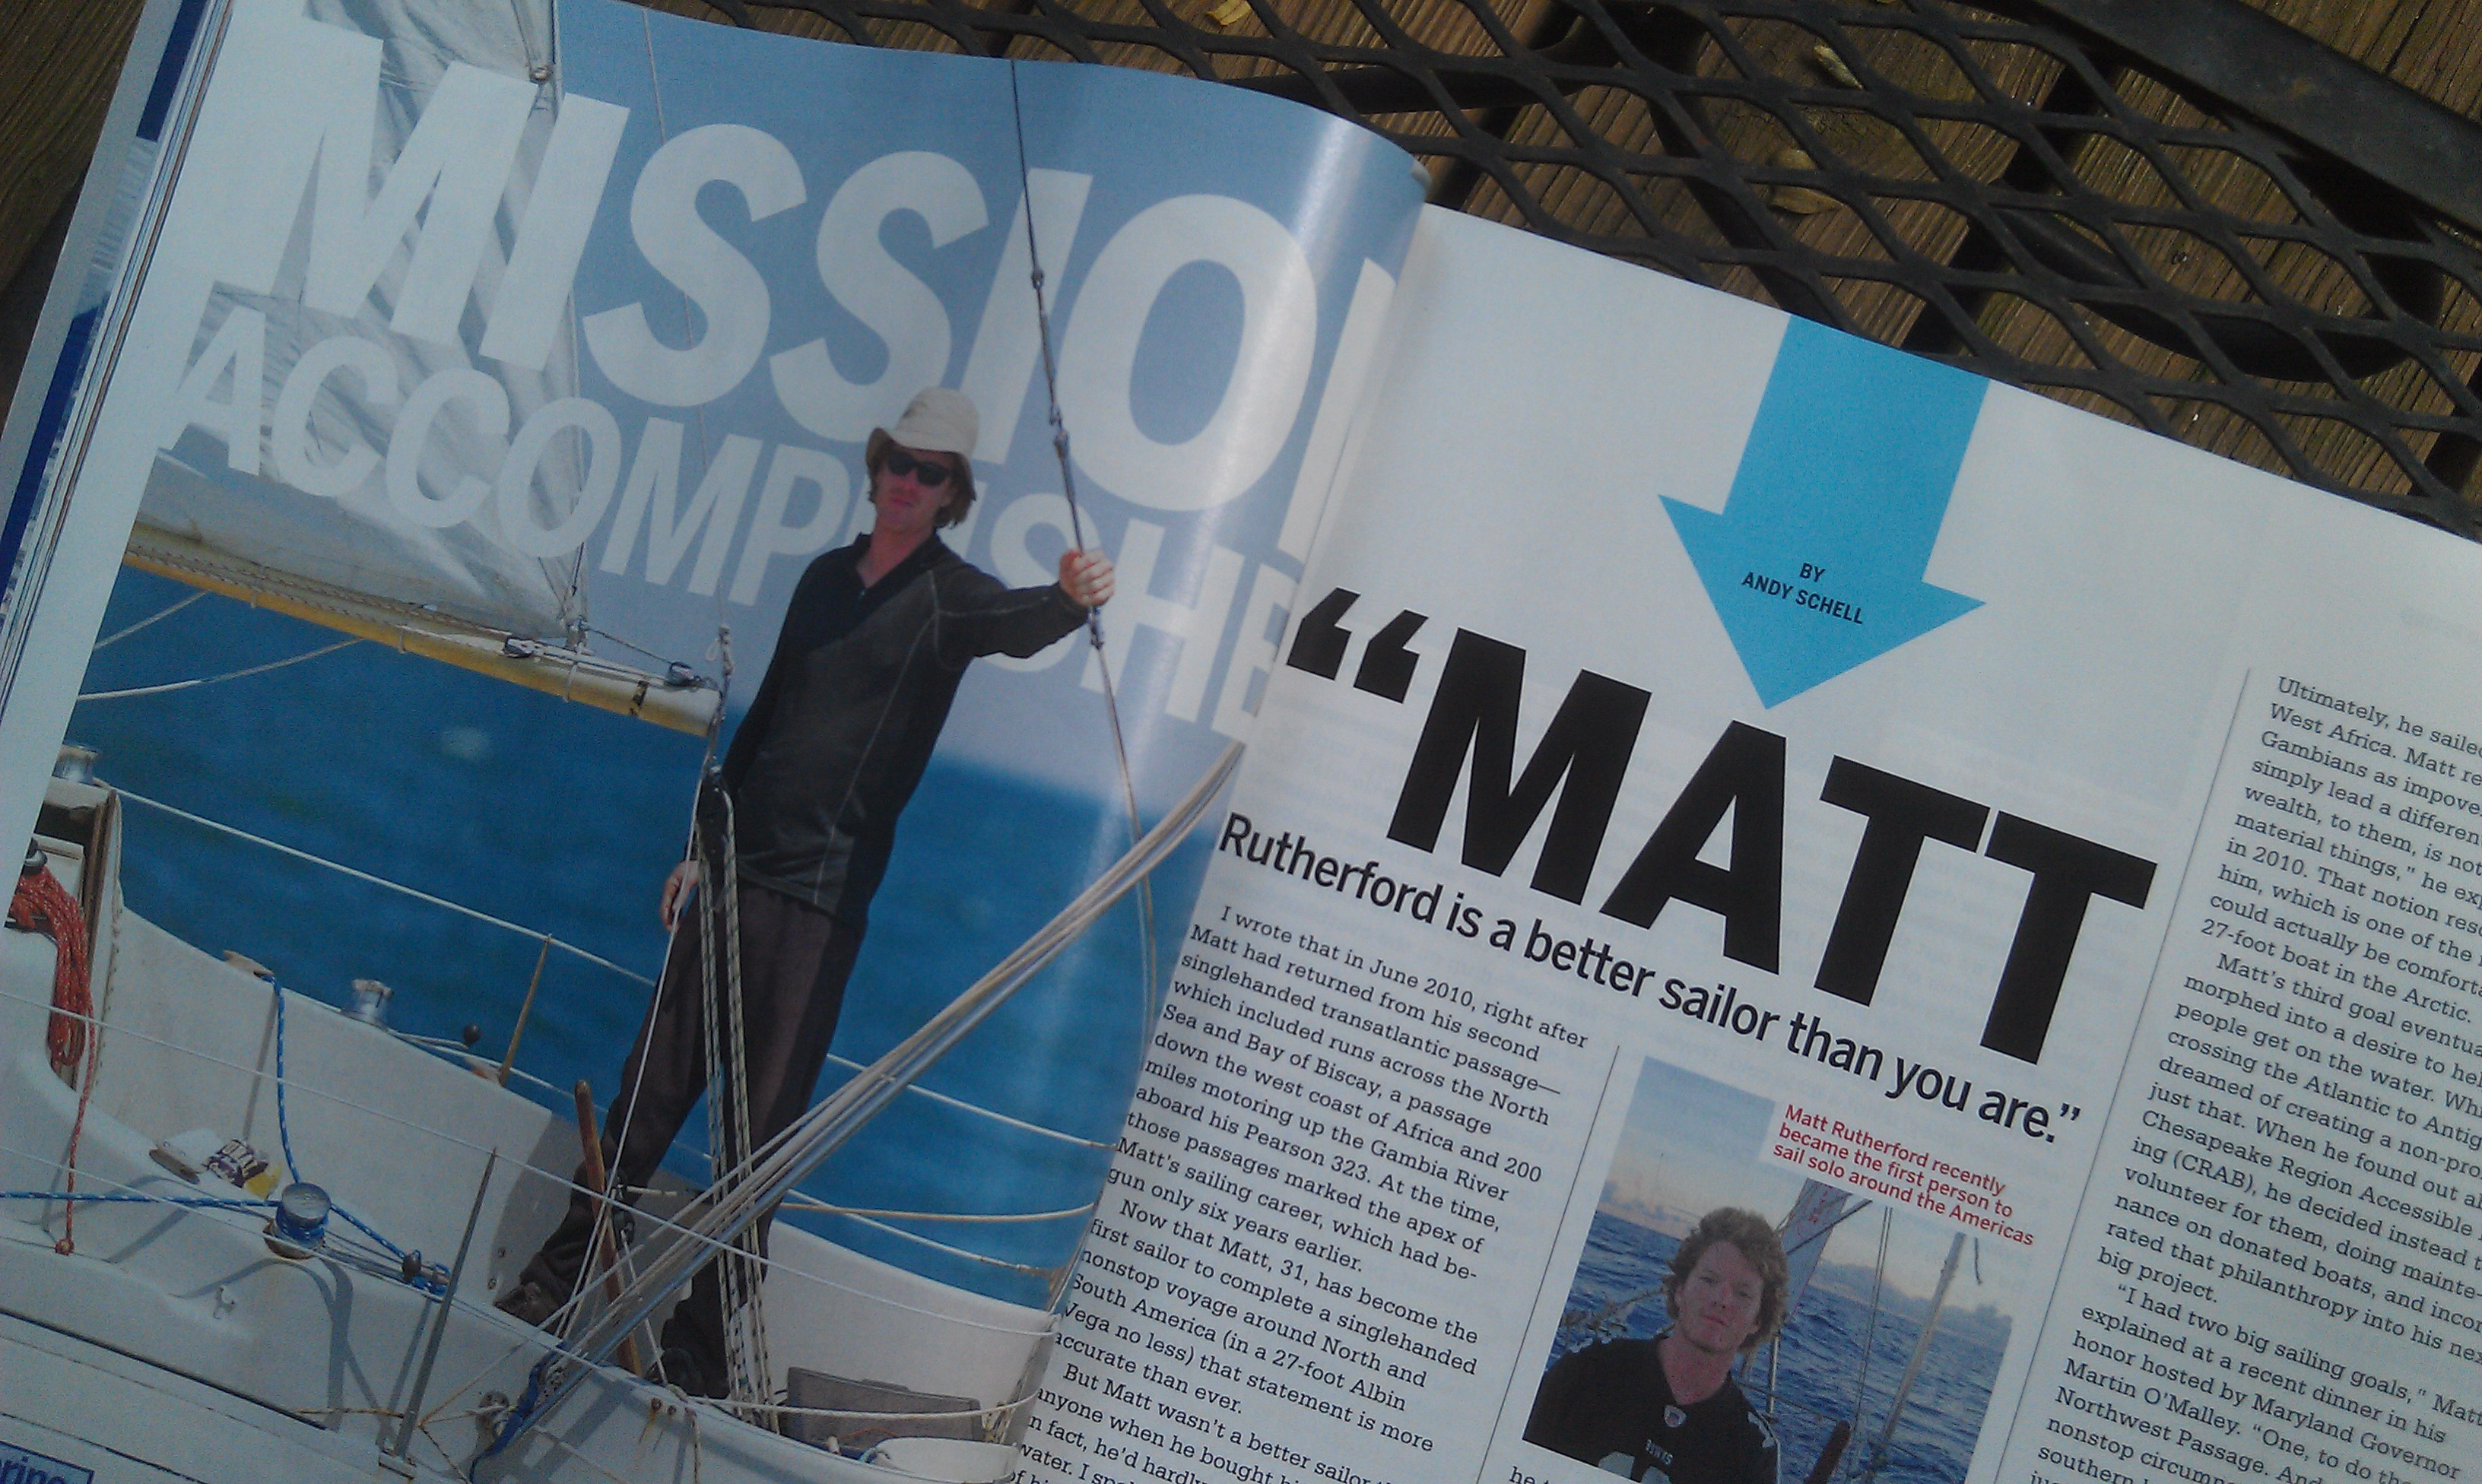 Andy Schell's article about Matt Rutherford's solo, non-stop circumnavigation of the Americas